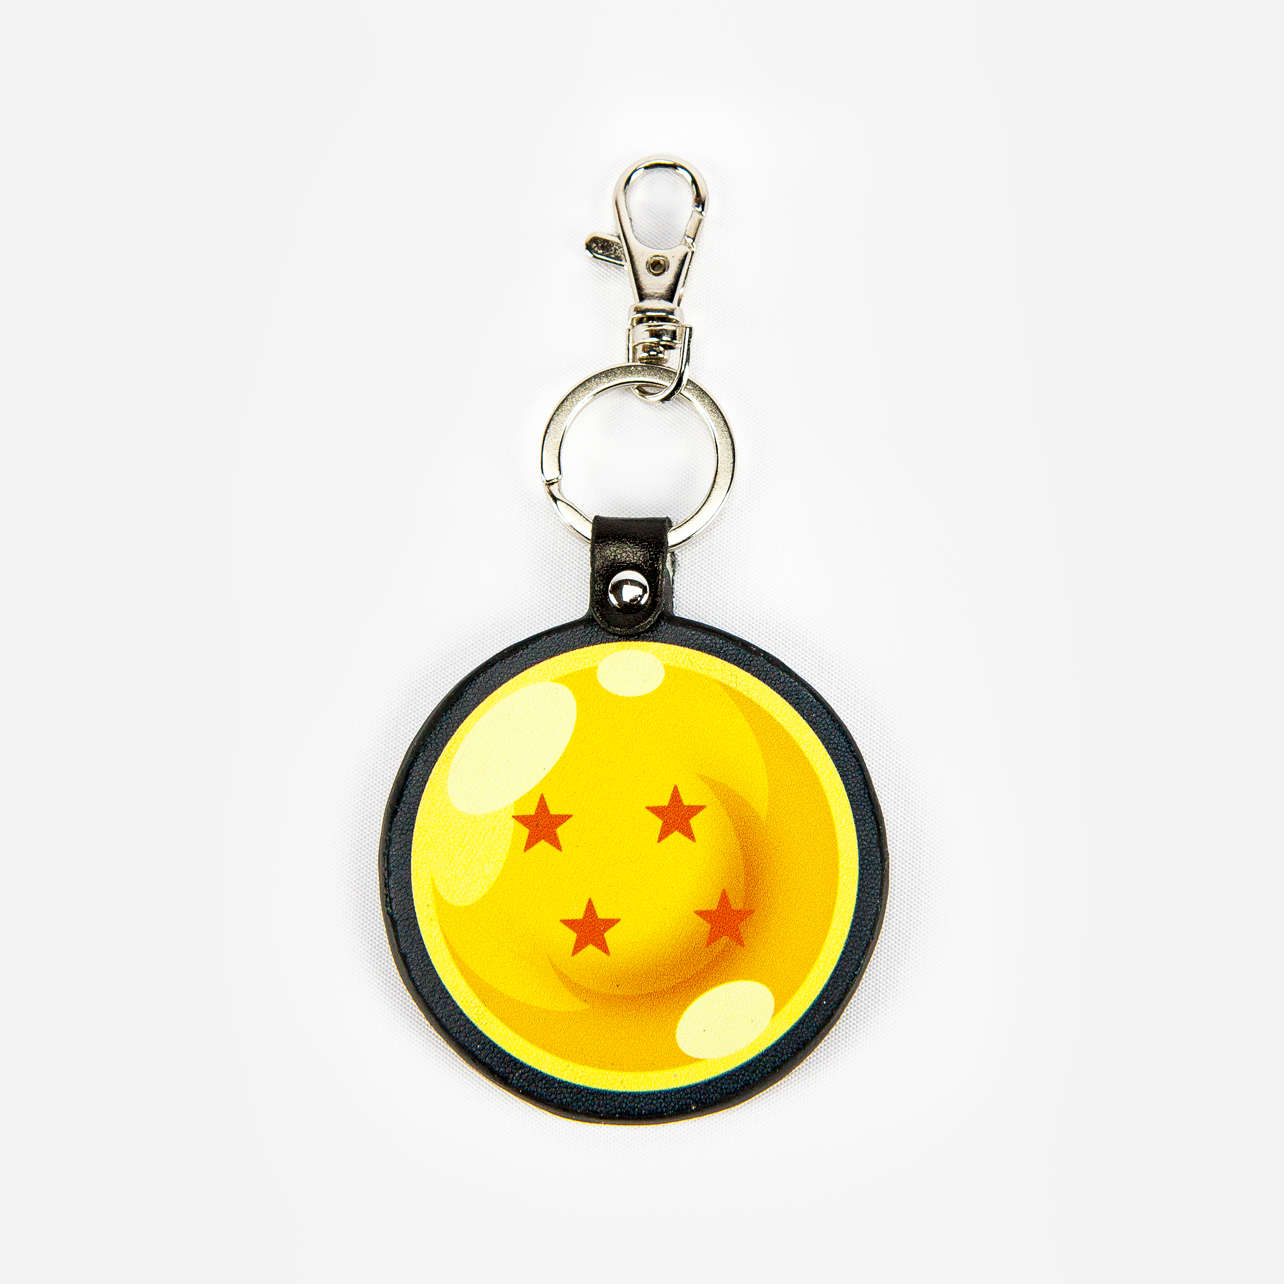 Dragonball Keychain accessories